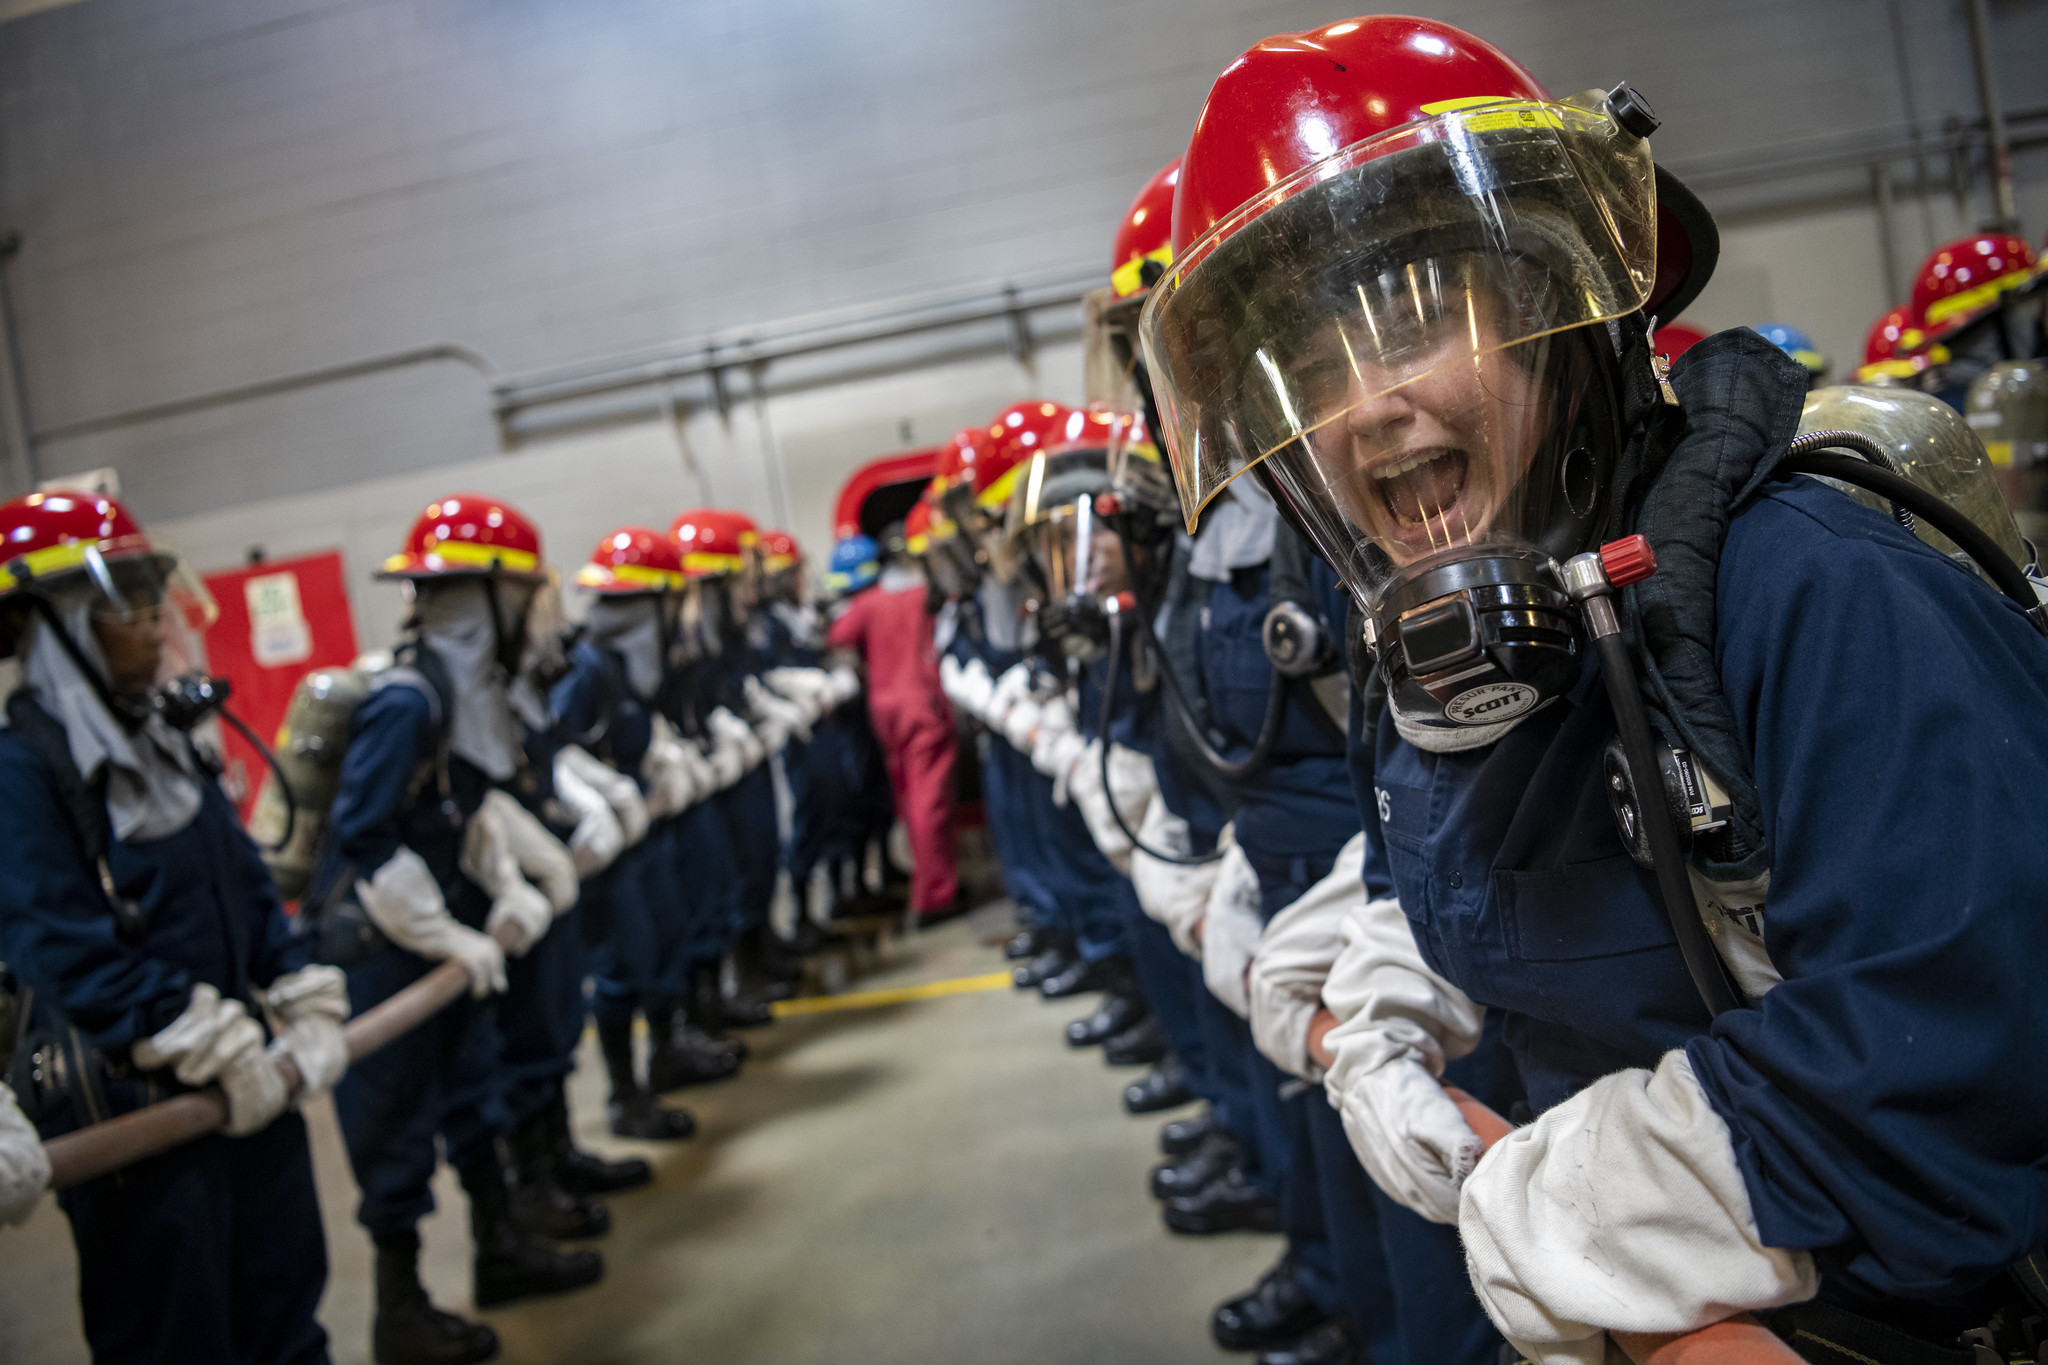 Recruits participate in firefighting and damage control training inside the USS Chief Fire Fighter Trainer on July 29, 2020, as part of the hands-on learning at Recruit Training Command at Great Lakes, Ill. (MC1 Camilo Fernan/Navy)